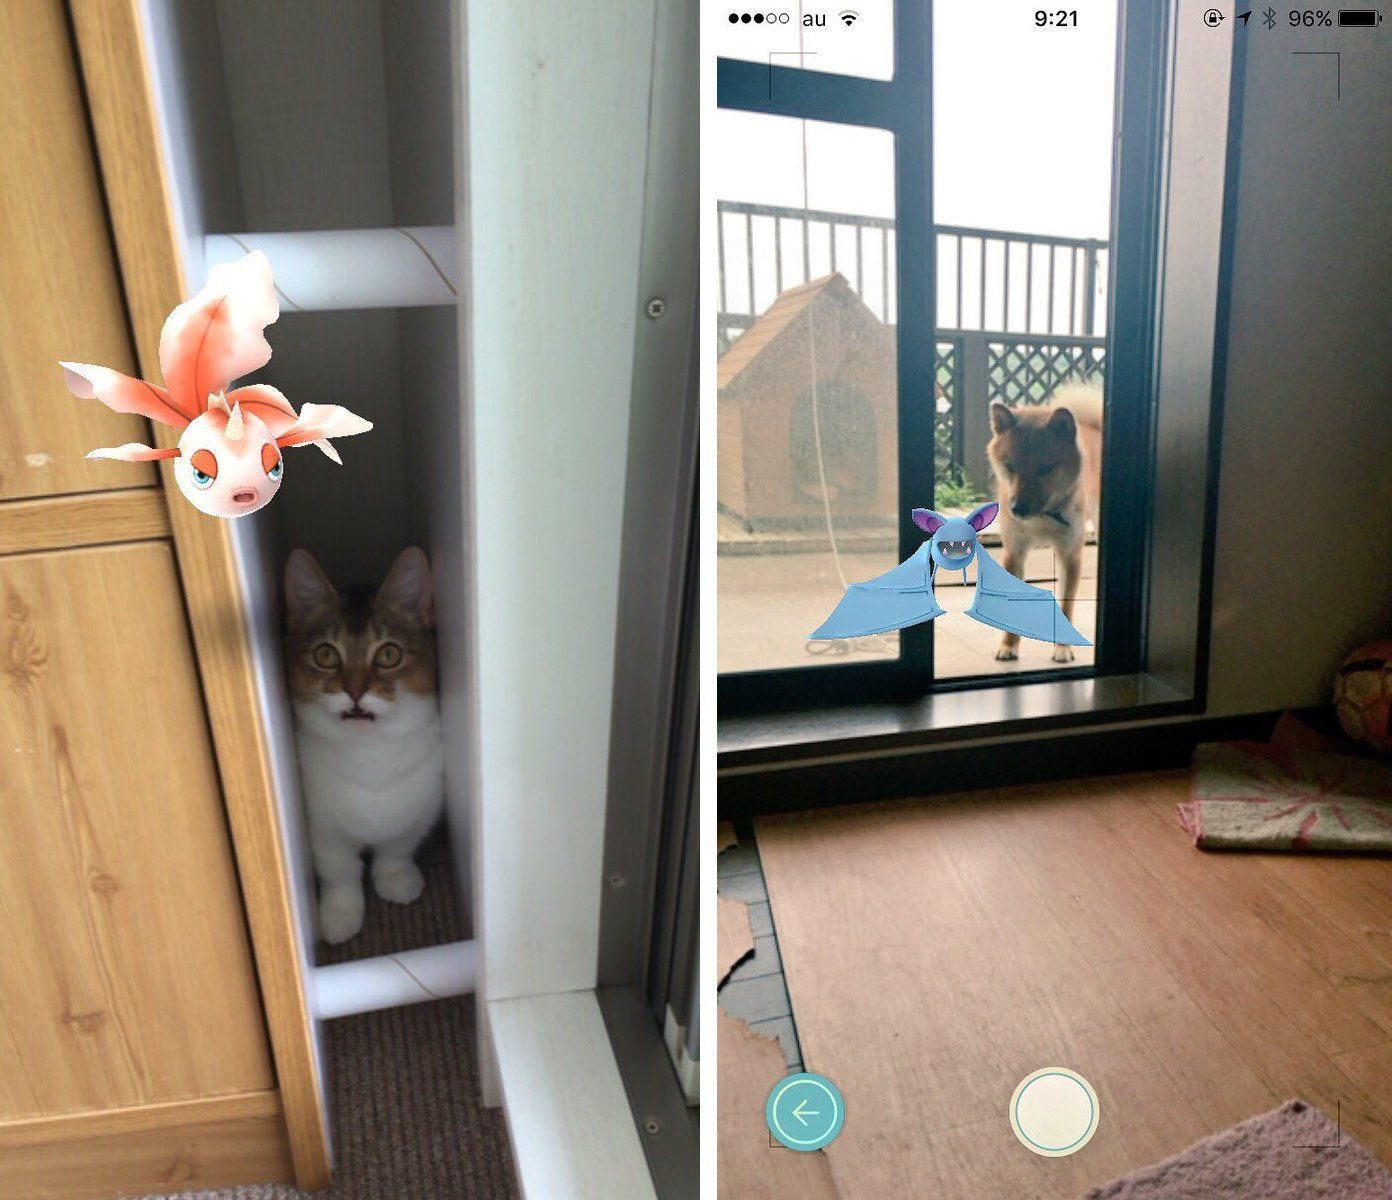 Pokemon Go Players Are Convinced Their Pets Can See Pokemon In Real